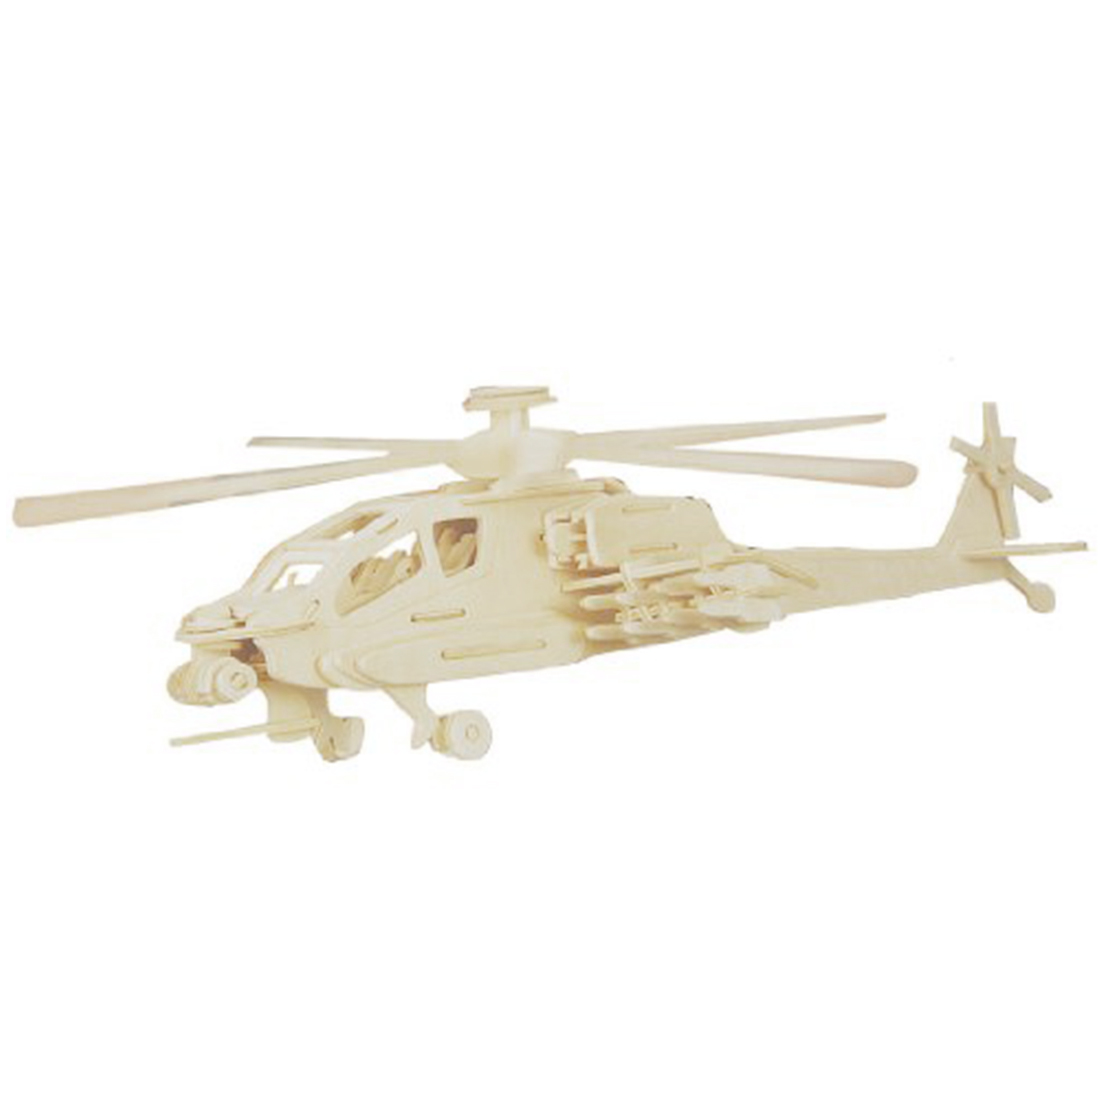 Child 3D Wooden Apache Model Woodcraft Construction Kit Puzzle Toy Gift